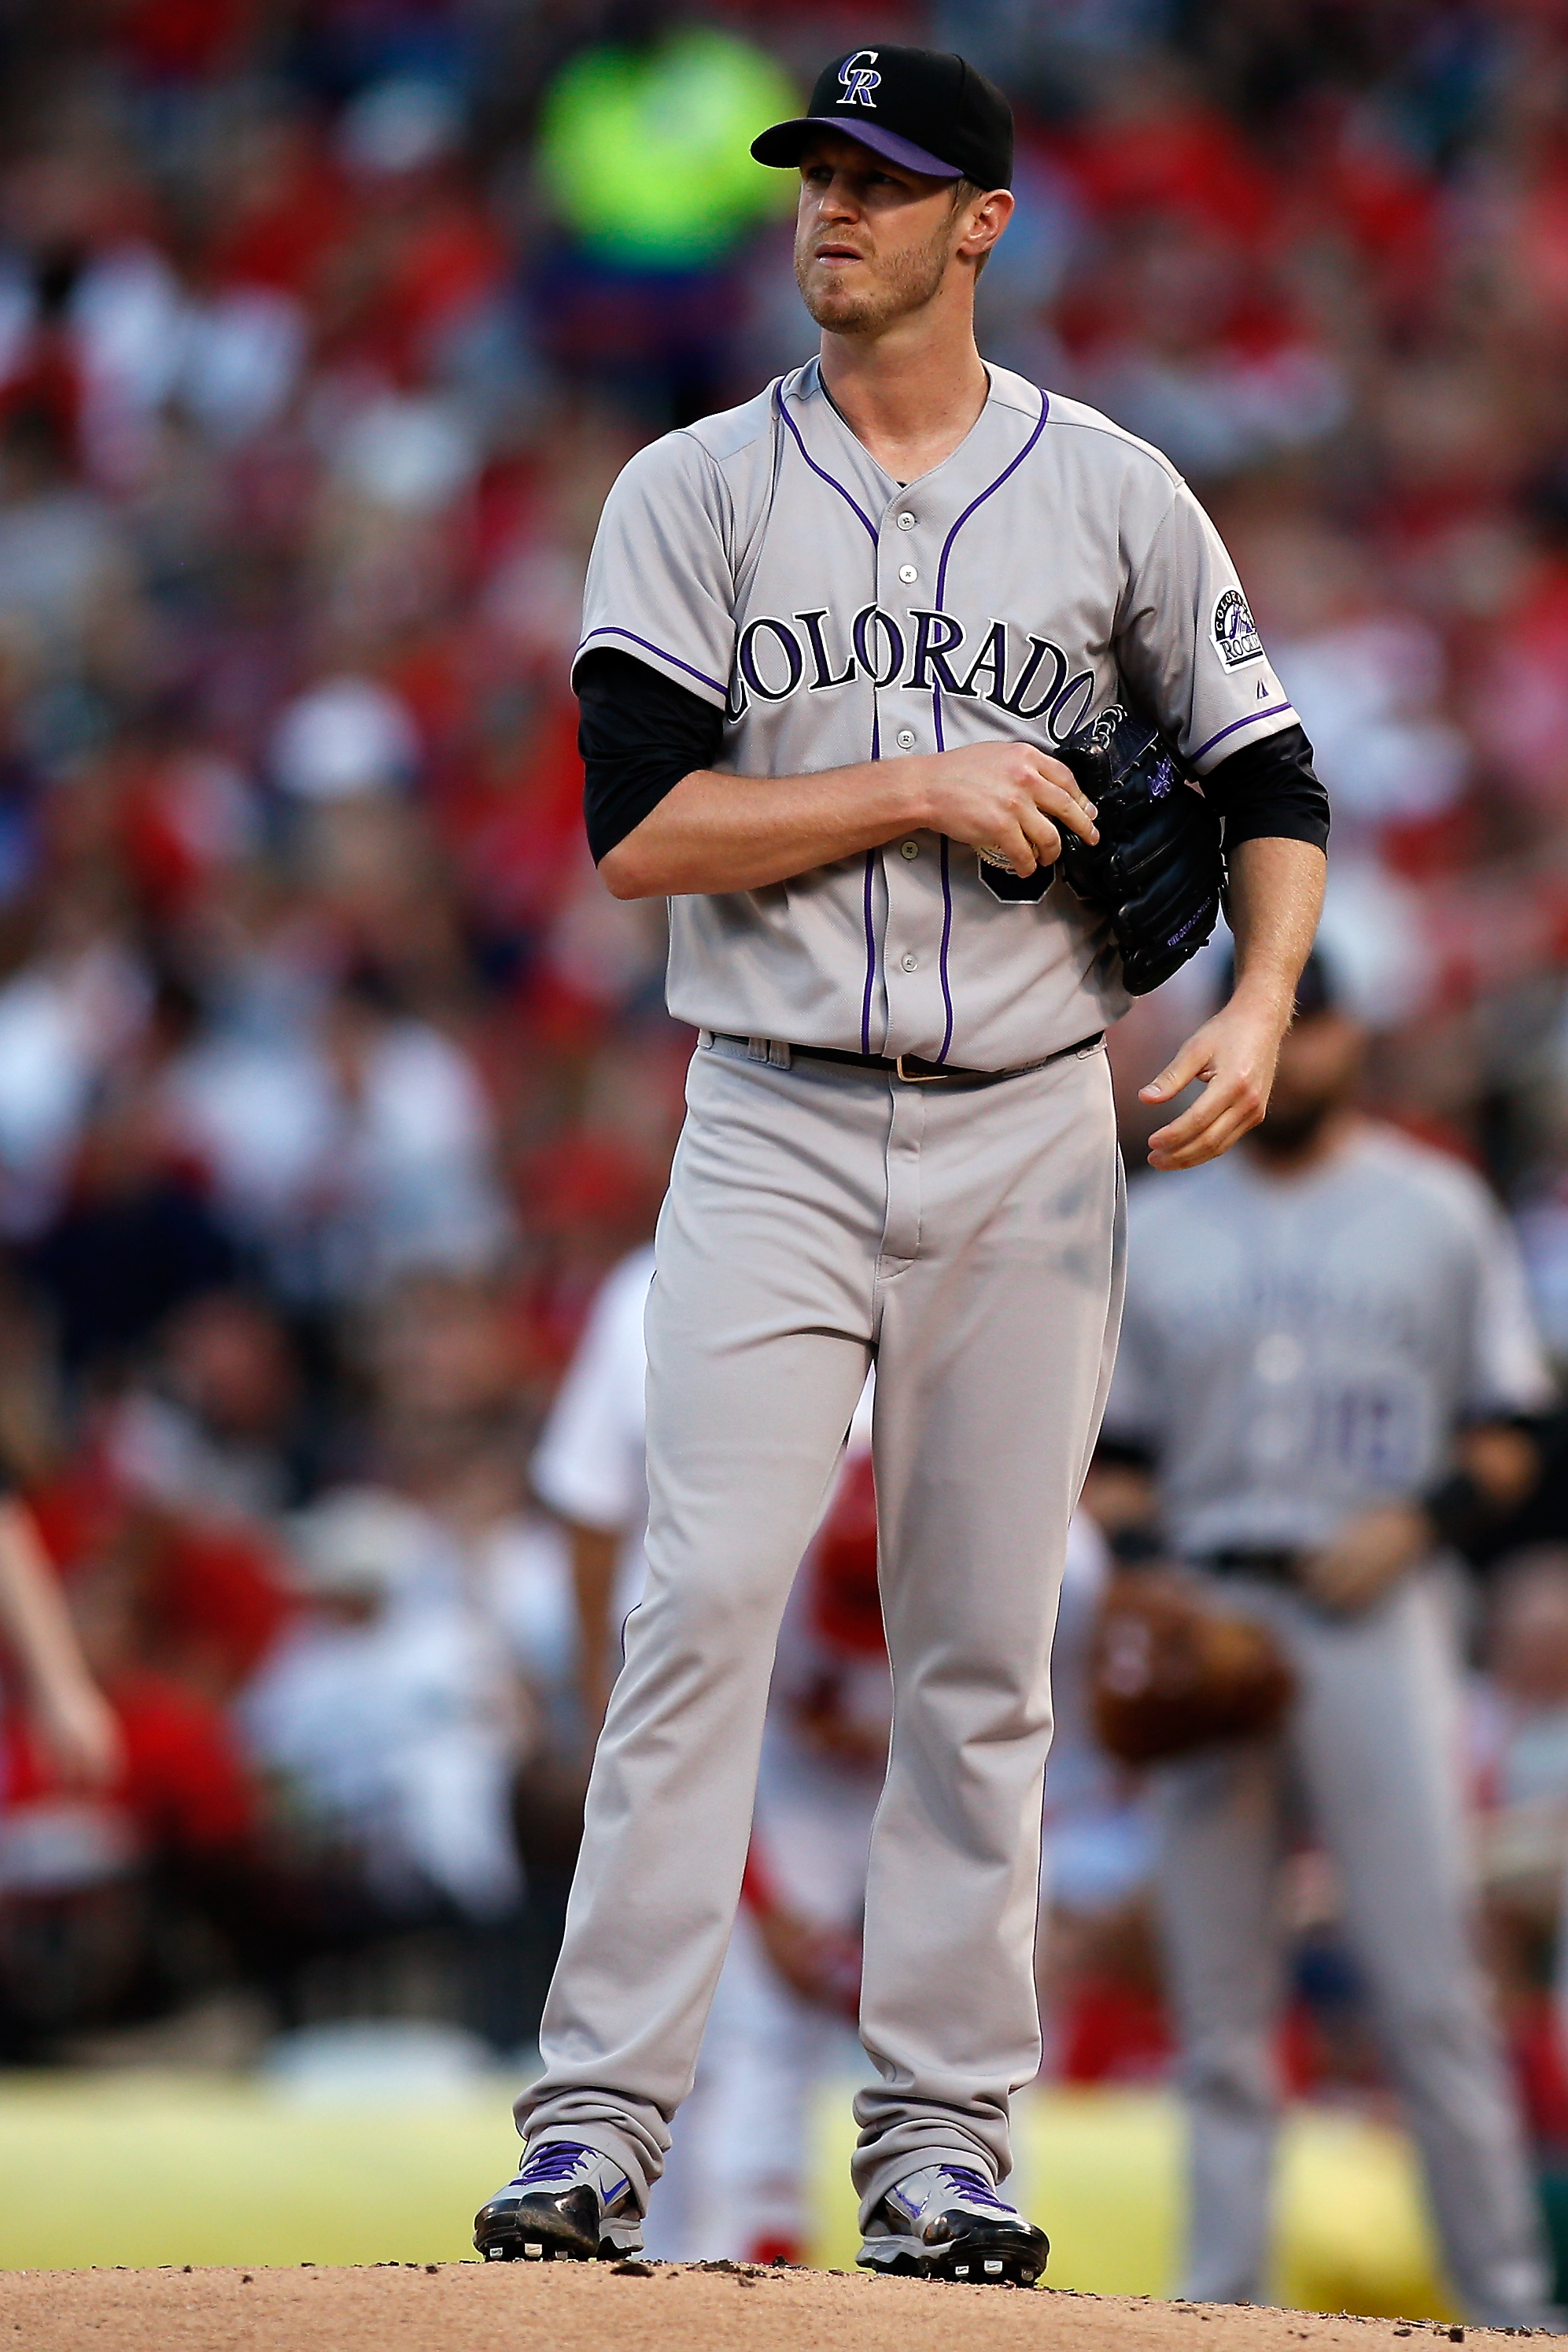 Colorado Rockies starting pitcher Kyle Kendrick  pauses on the mound after giving up a solo home run during the first inning of a baseball game against the St. Louis Cardinals, Friday, July 31, 2015, in St. Louis. (AP Photo/Scott Kane)